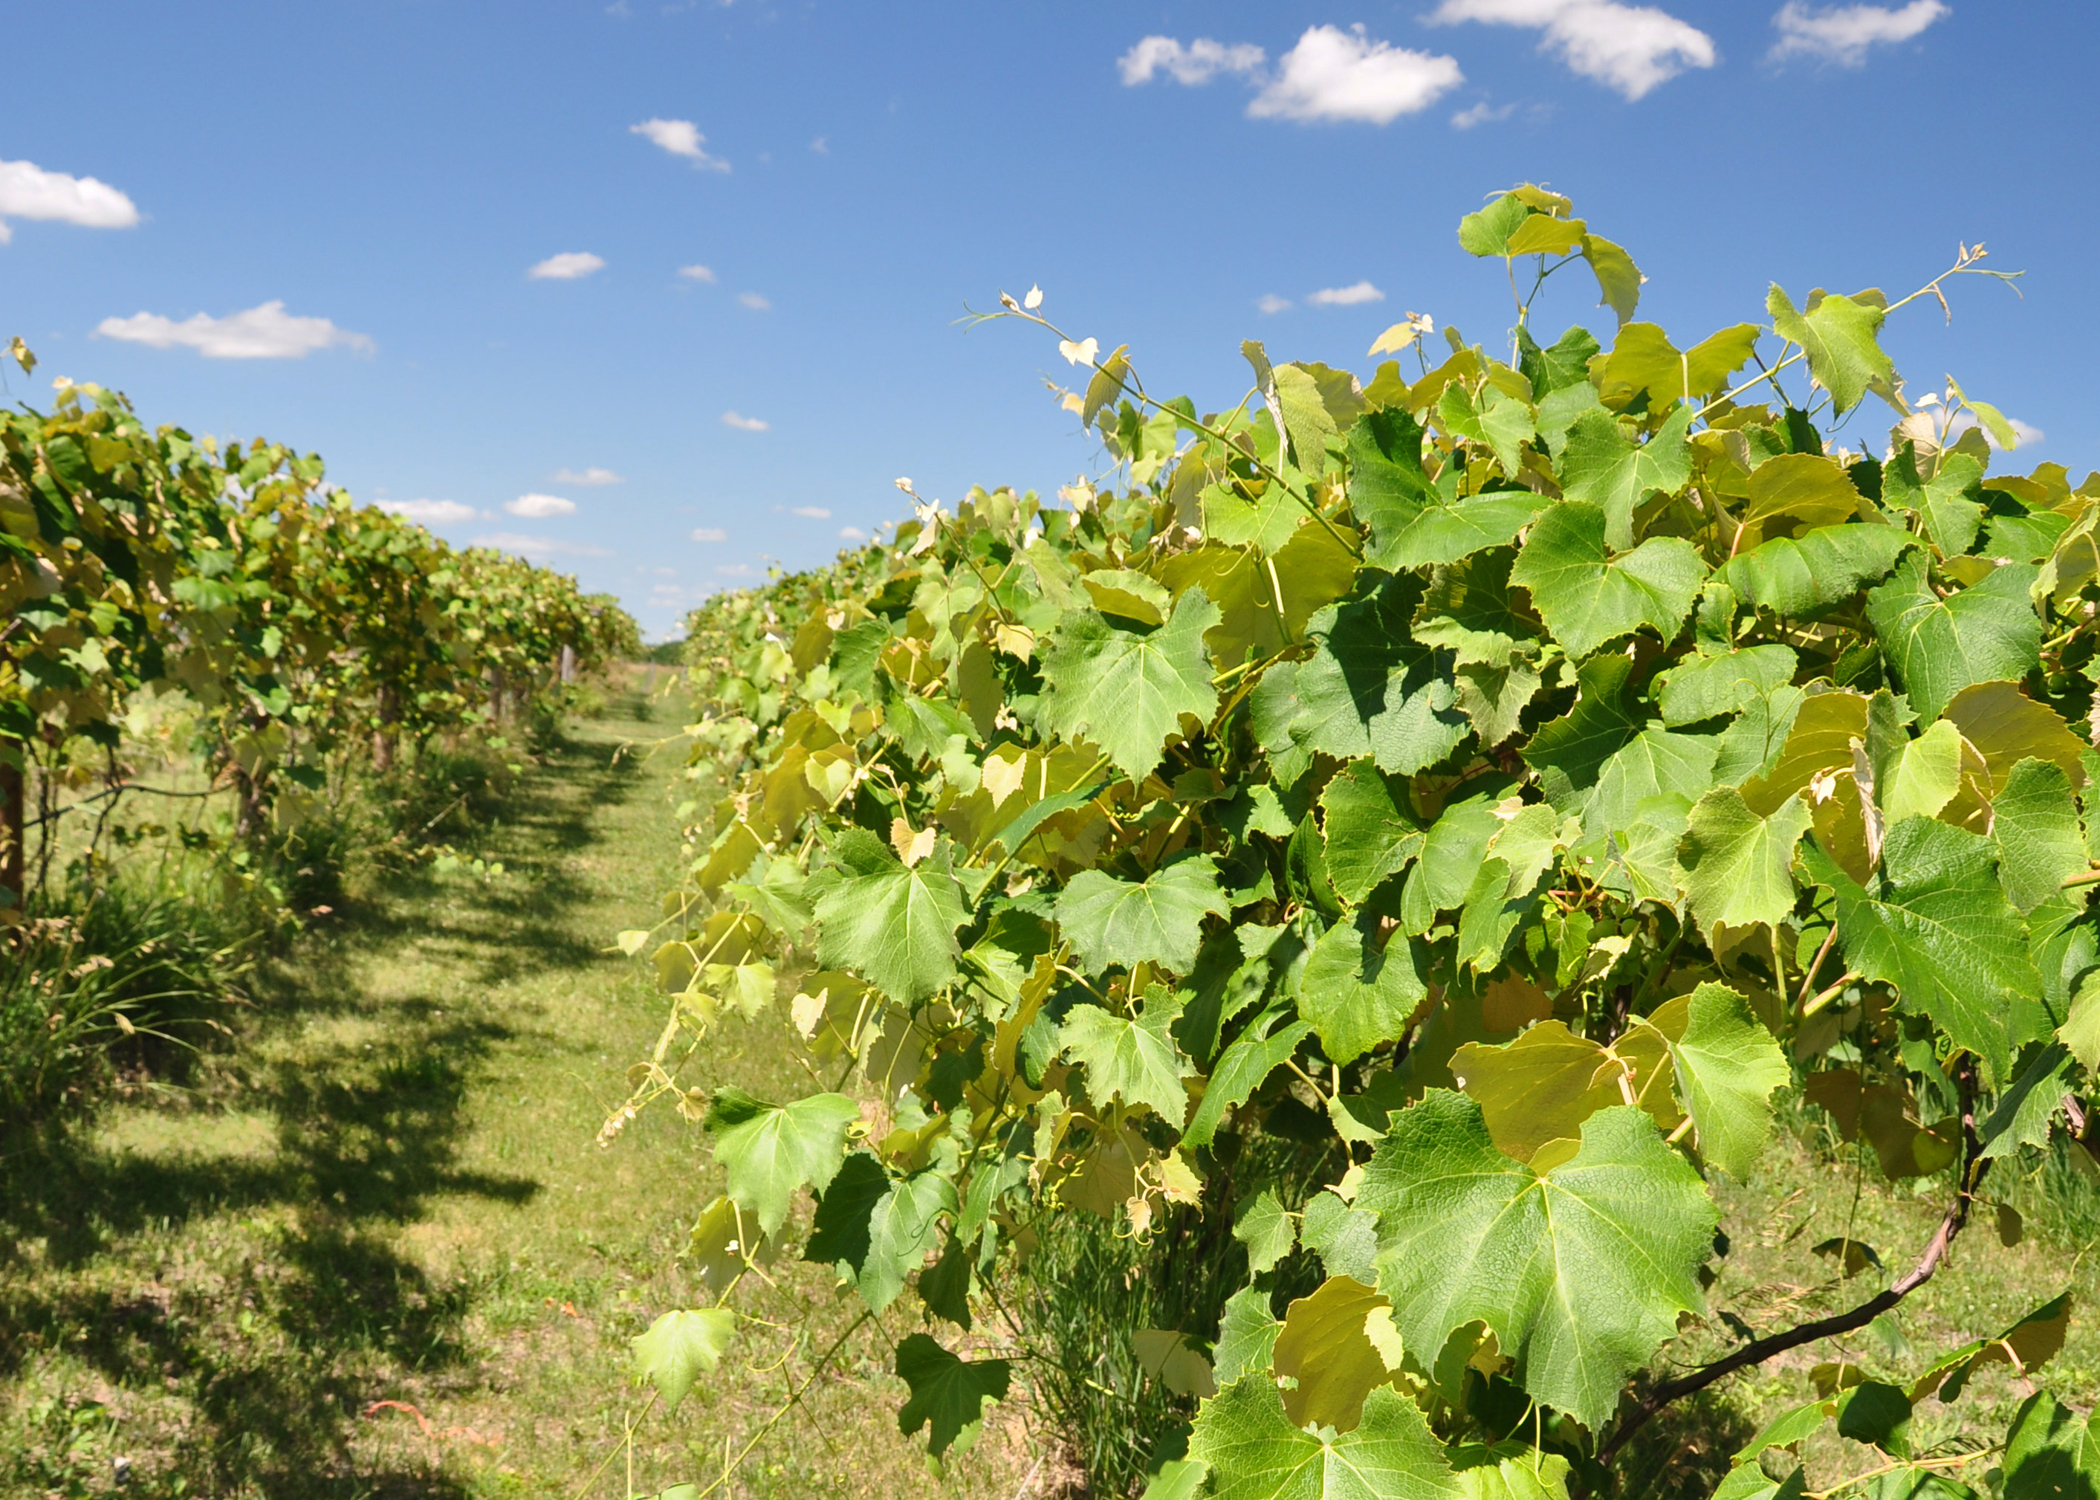 Despite drought conditions, grapes were growing well on this Warren County vineyard.